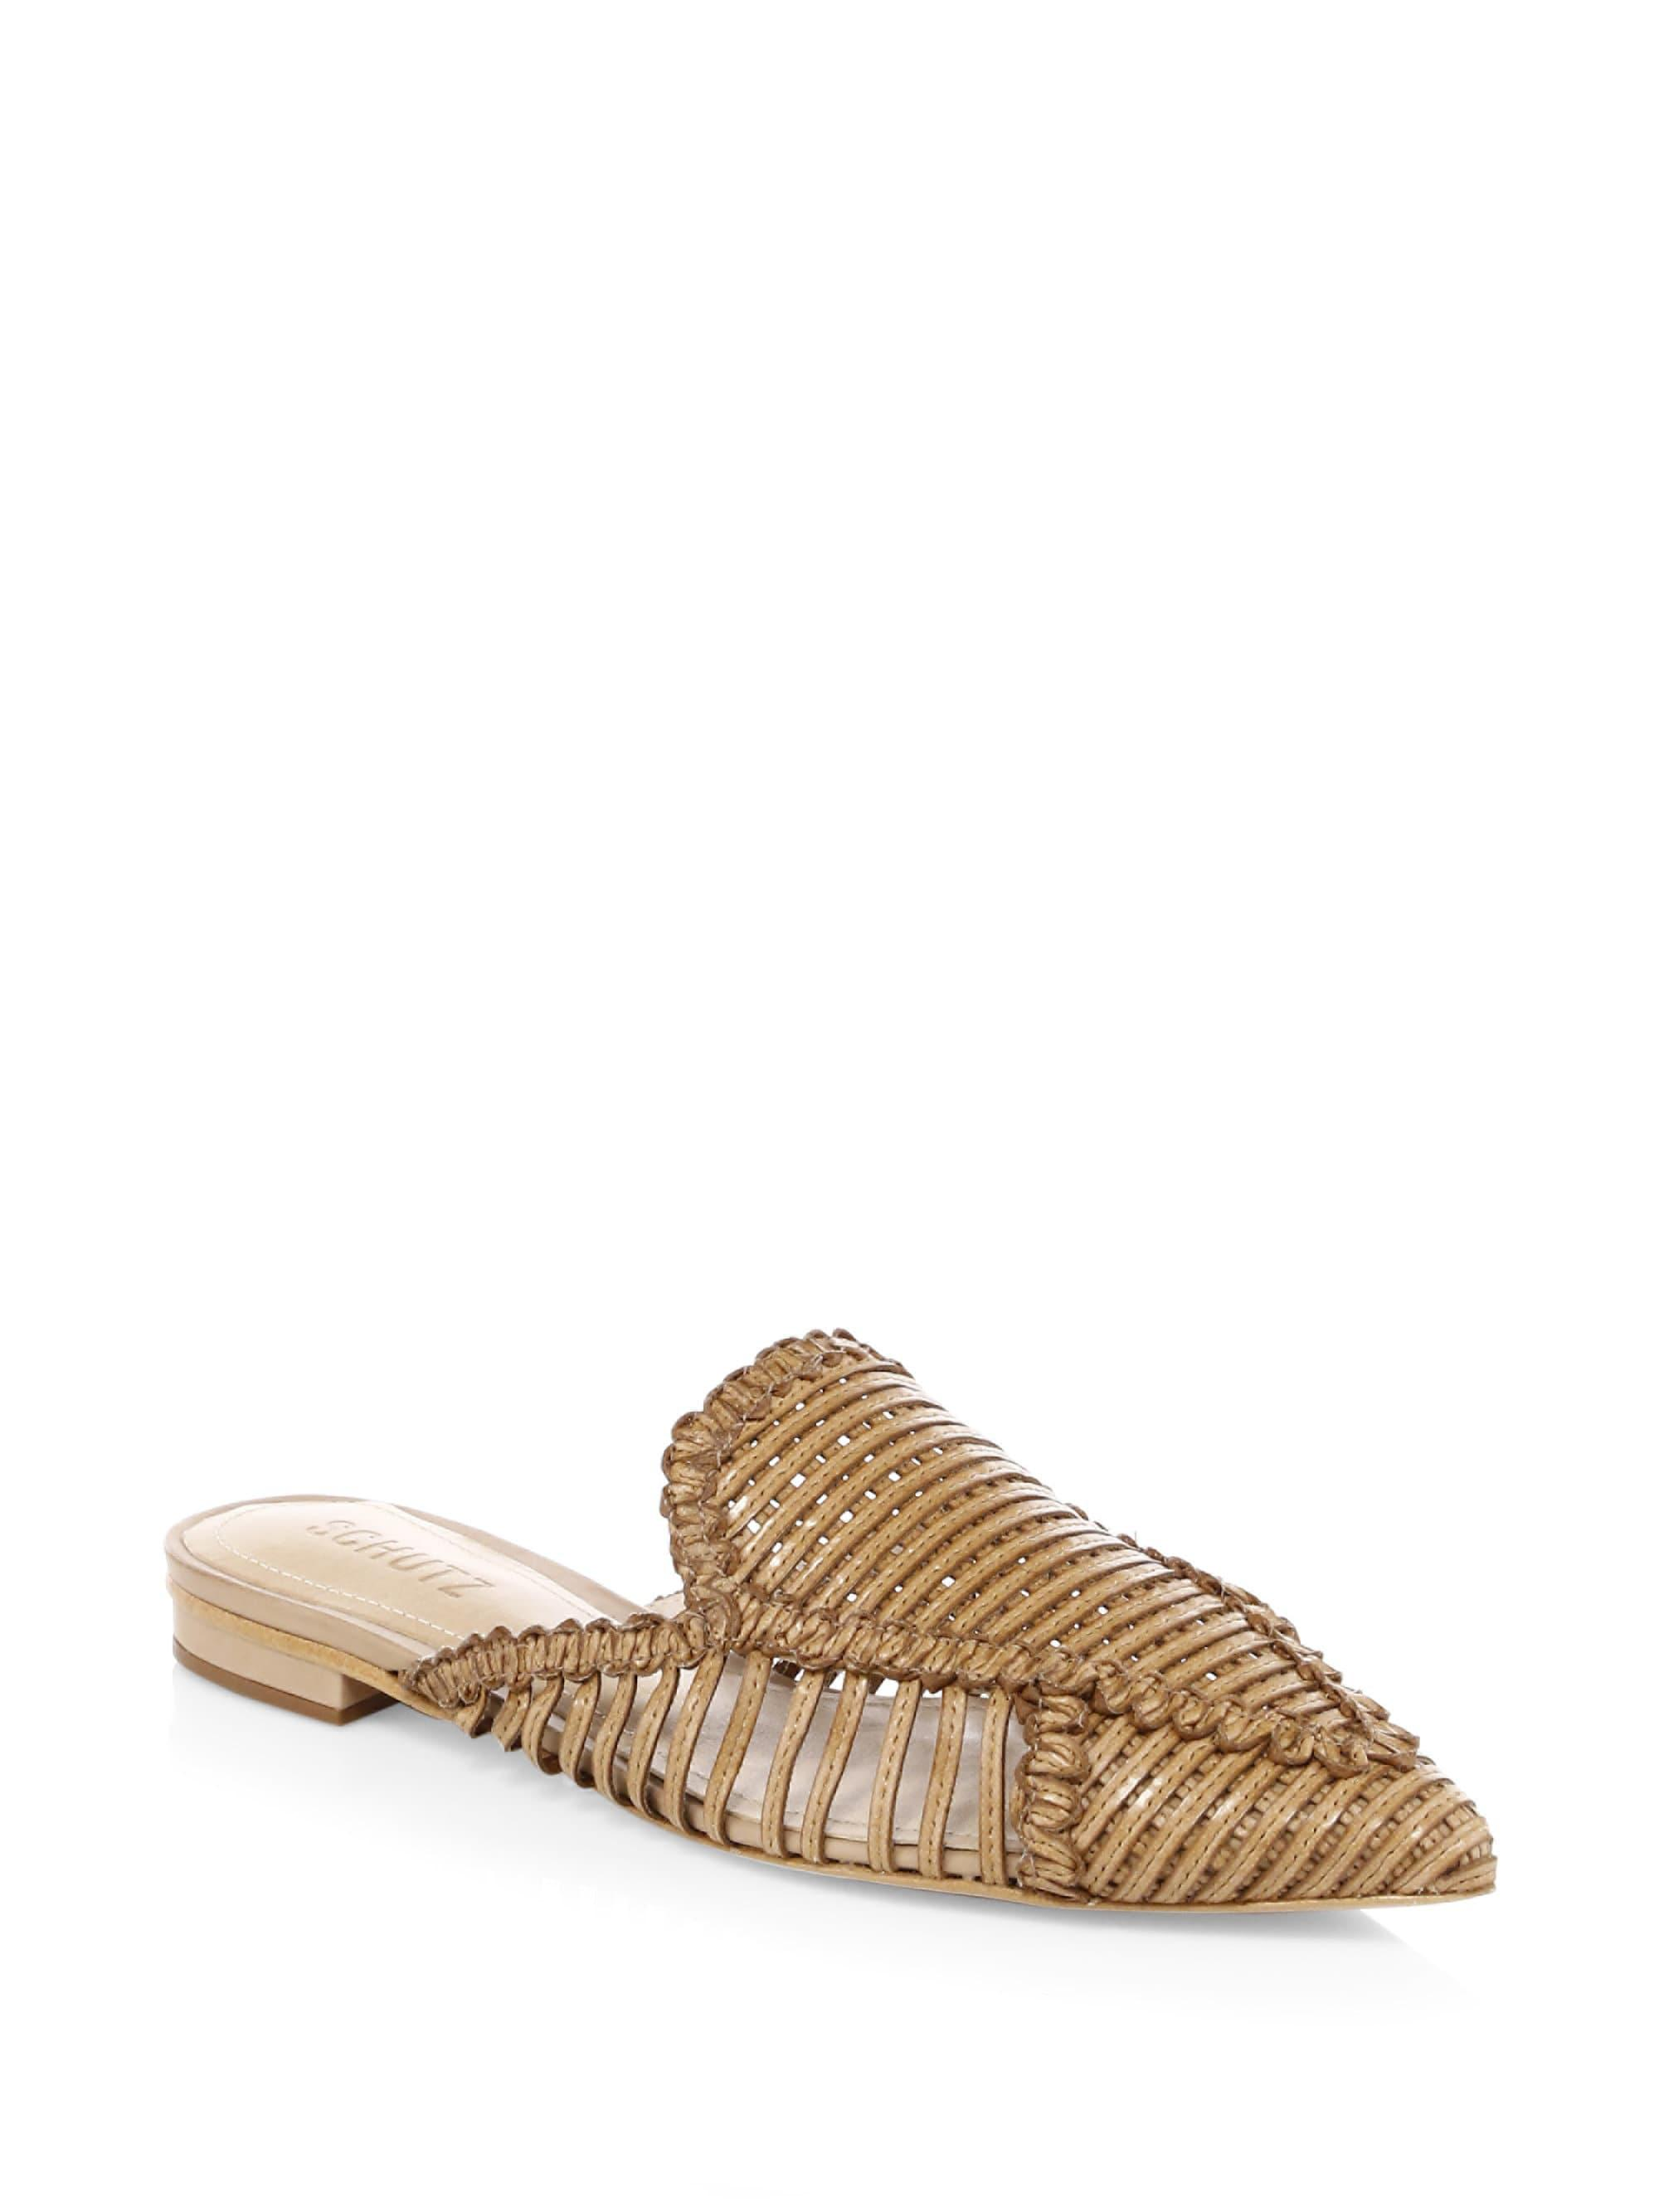 Schutz Leather Basket Weave Mules 74IaZt4h